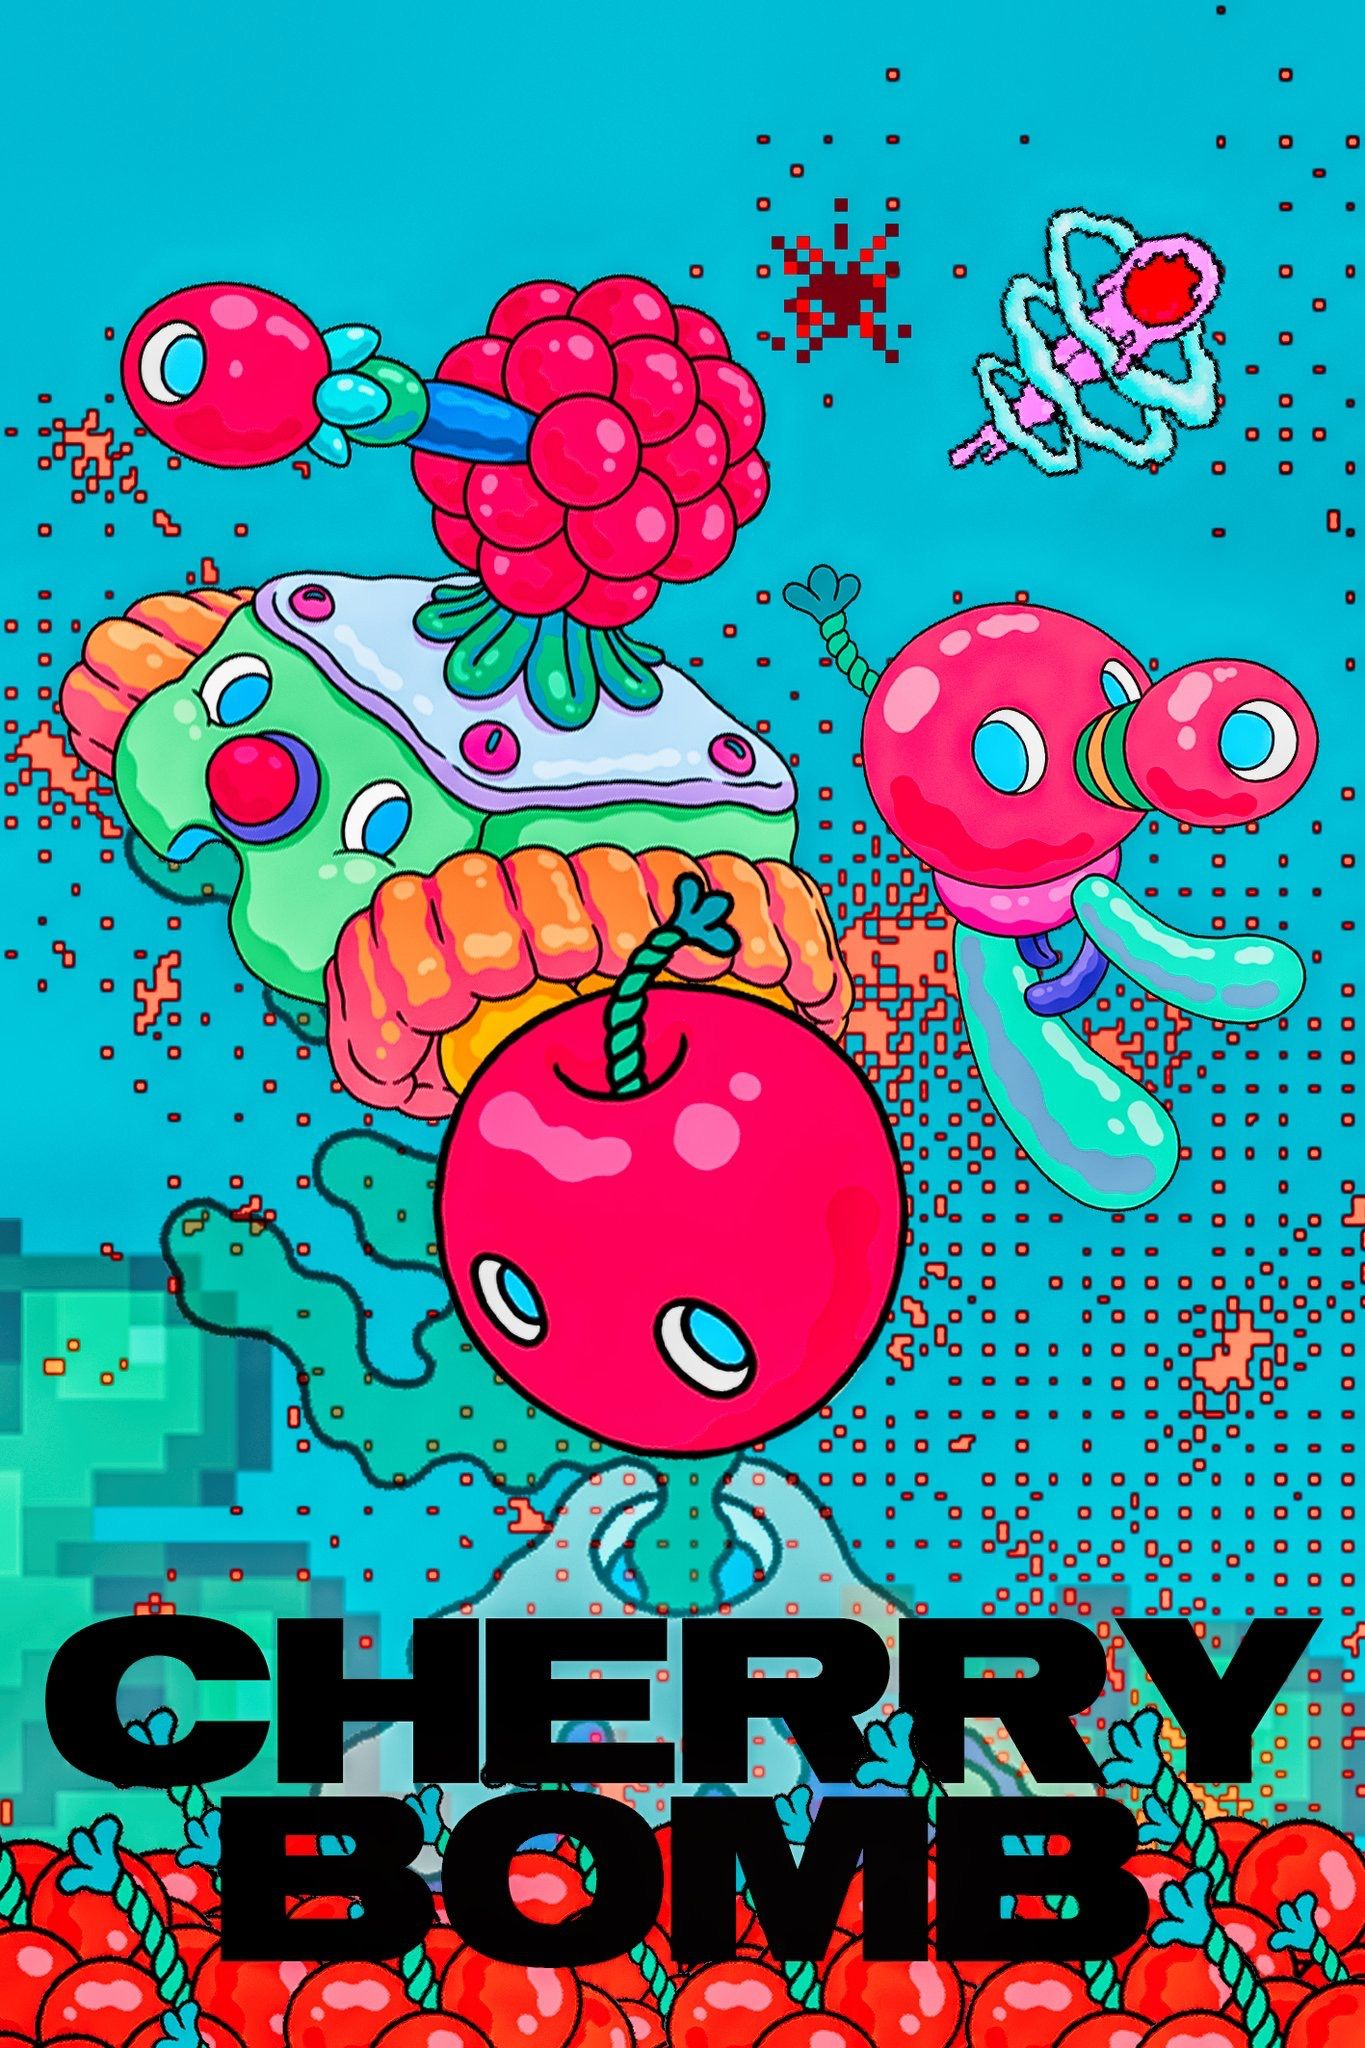 nct 127 cherry bomb nct pinterest nct nct 127 and nct cherry bomb